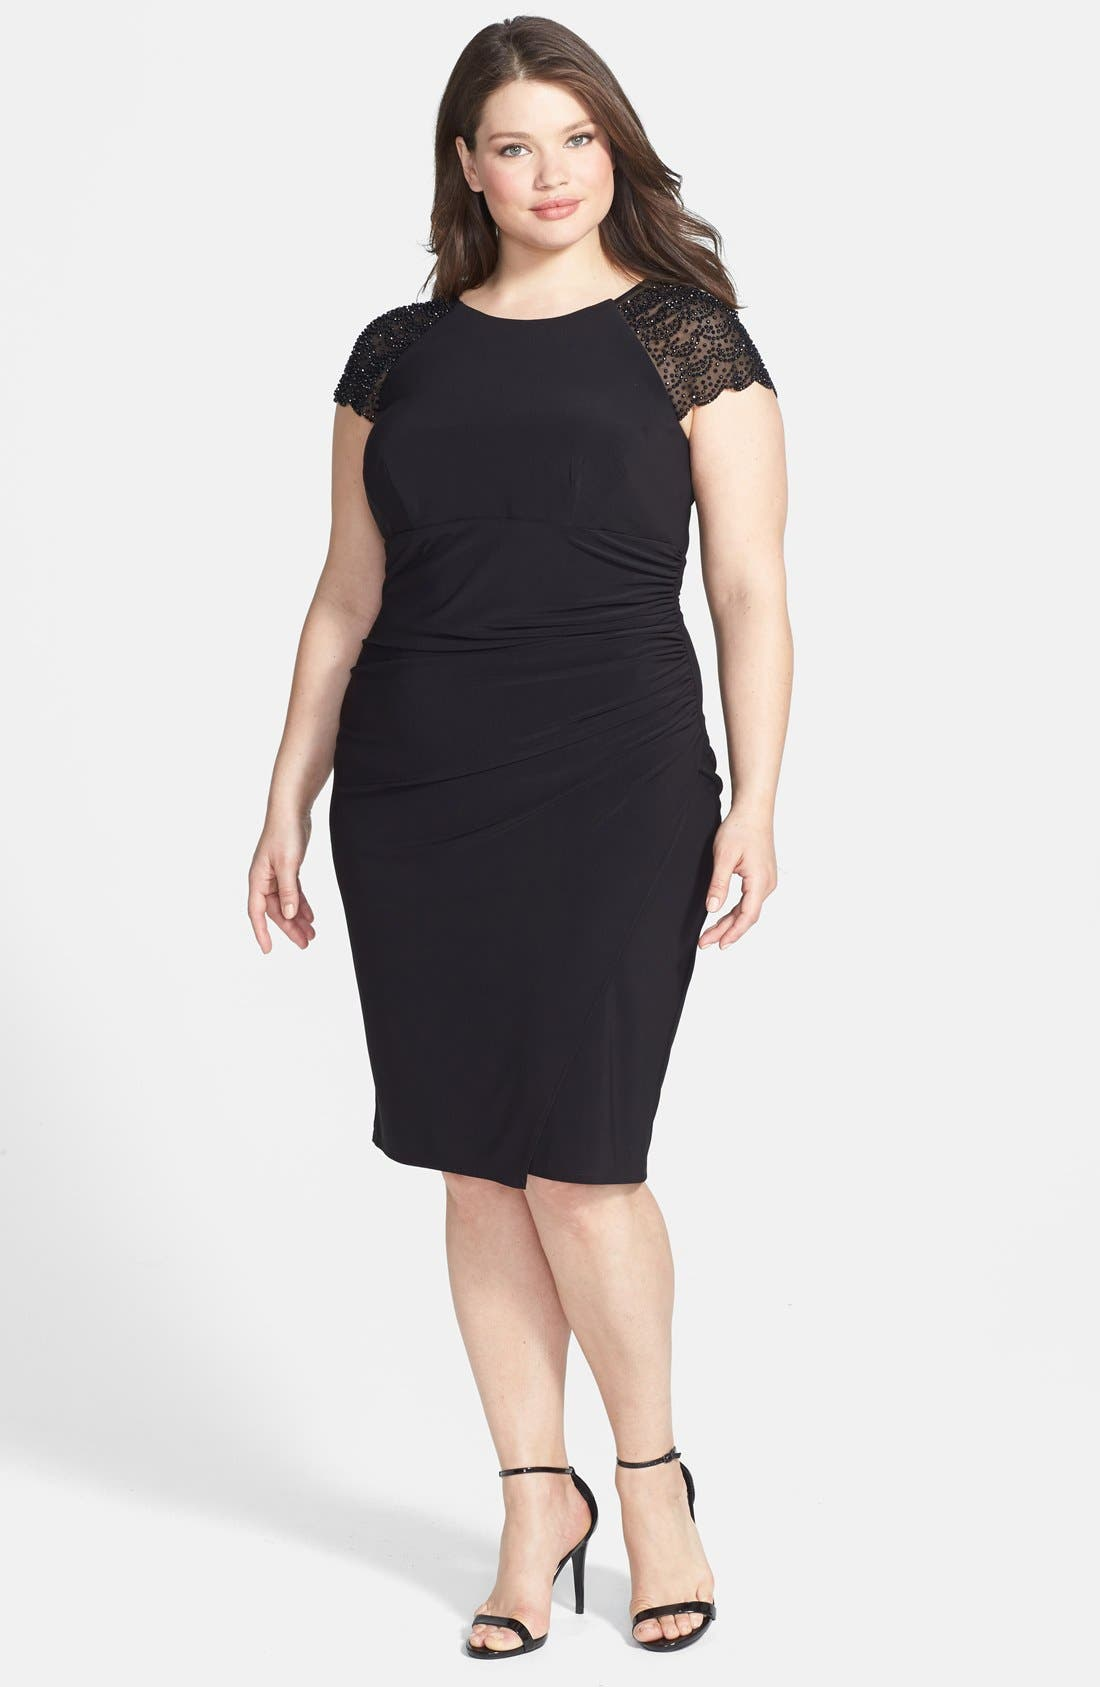 Alternate Image 1 Selected - Betsy & Adam Embellished Cap Sleeve Cocktail Dress (Plus Size)